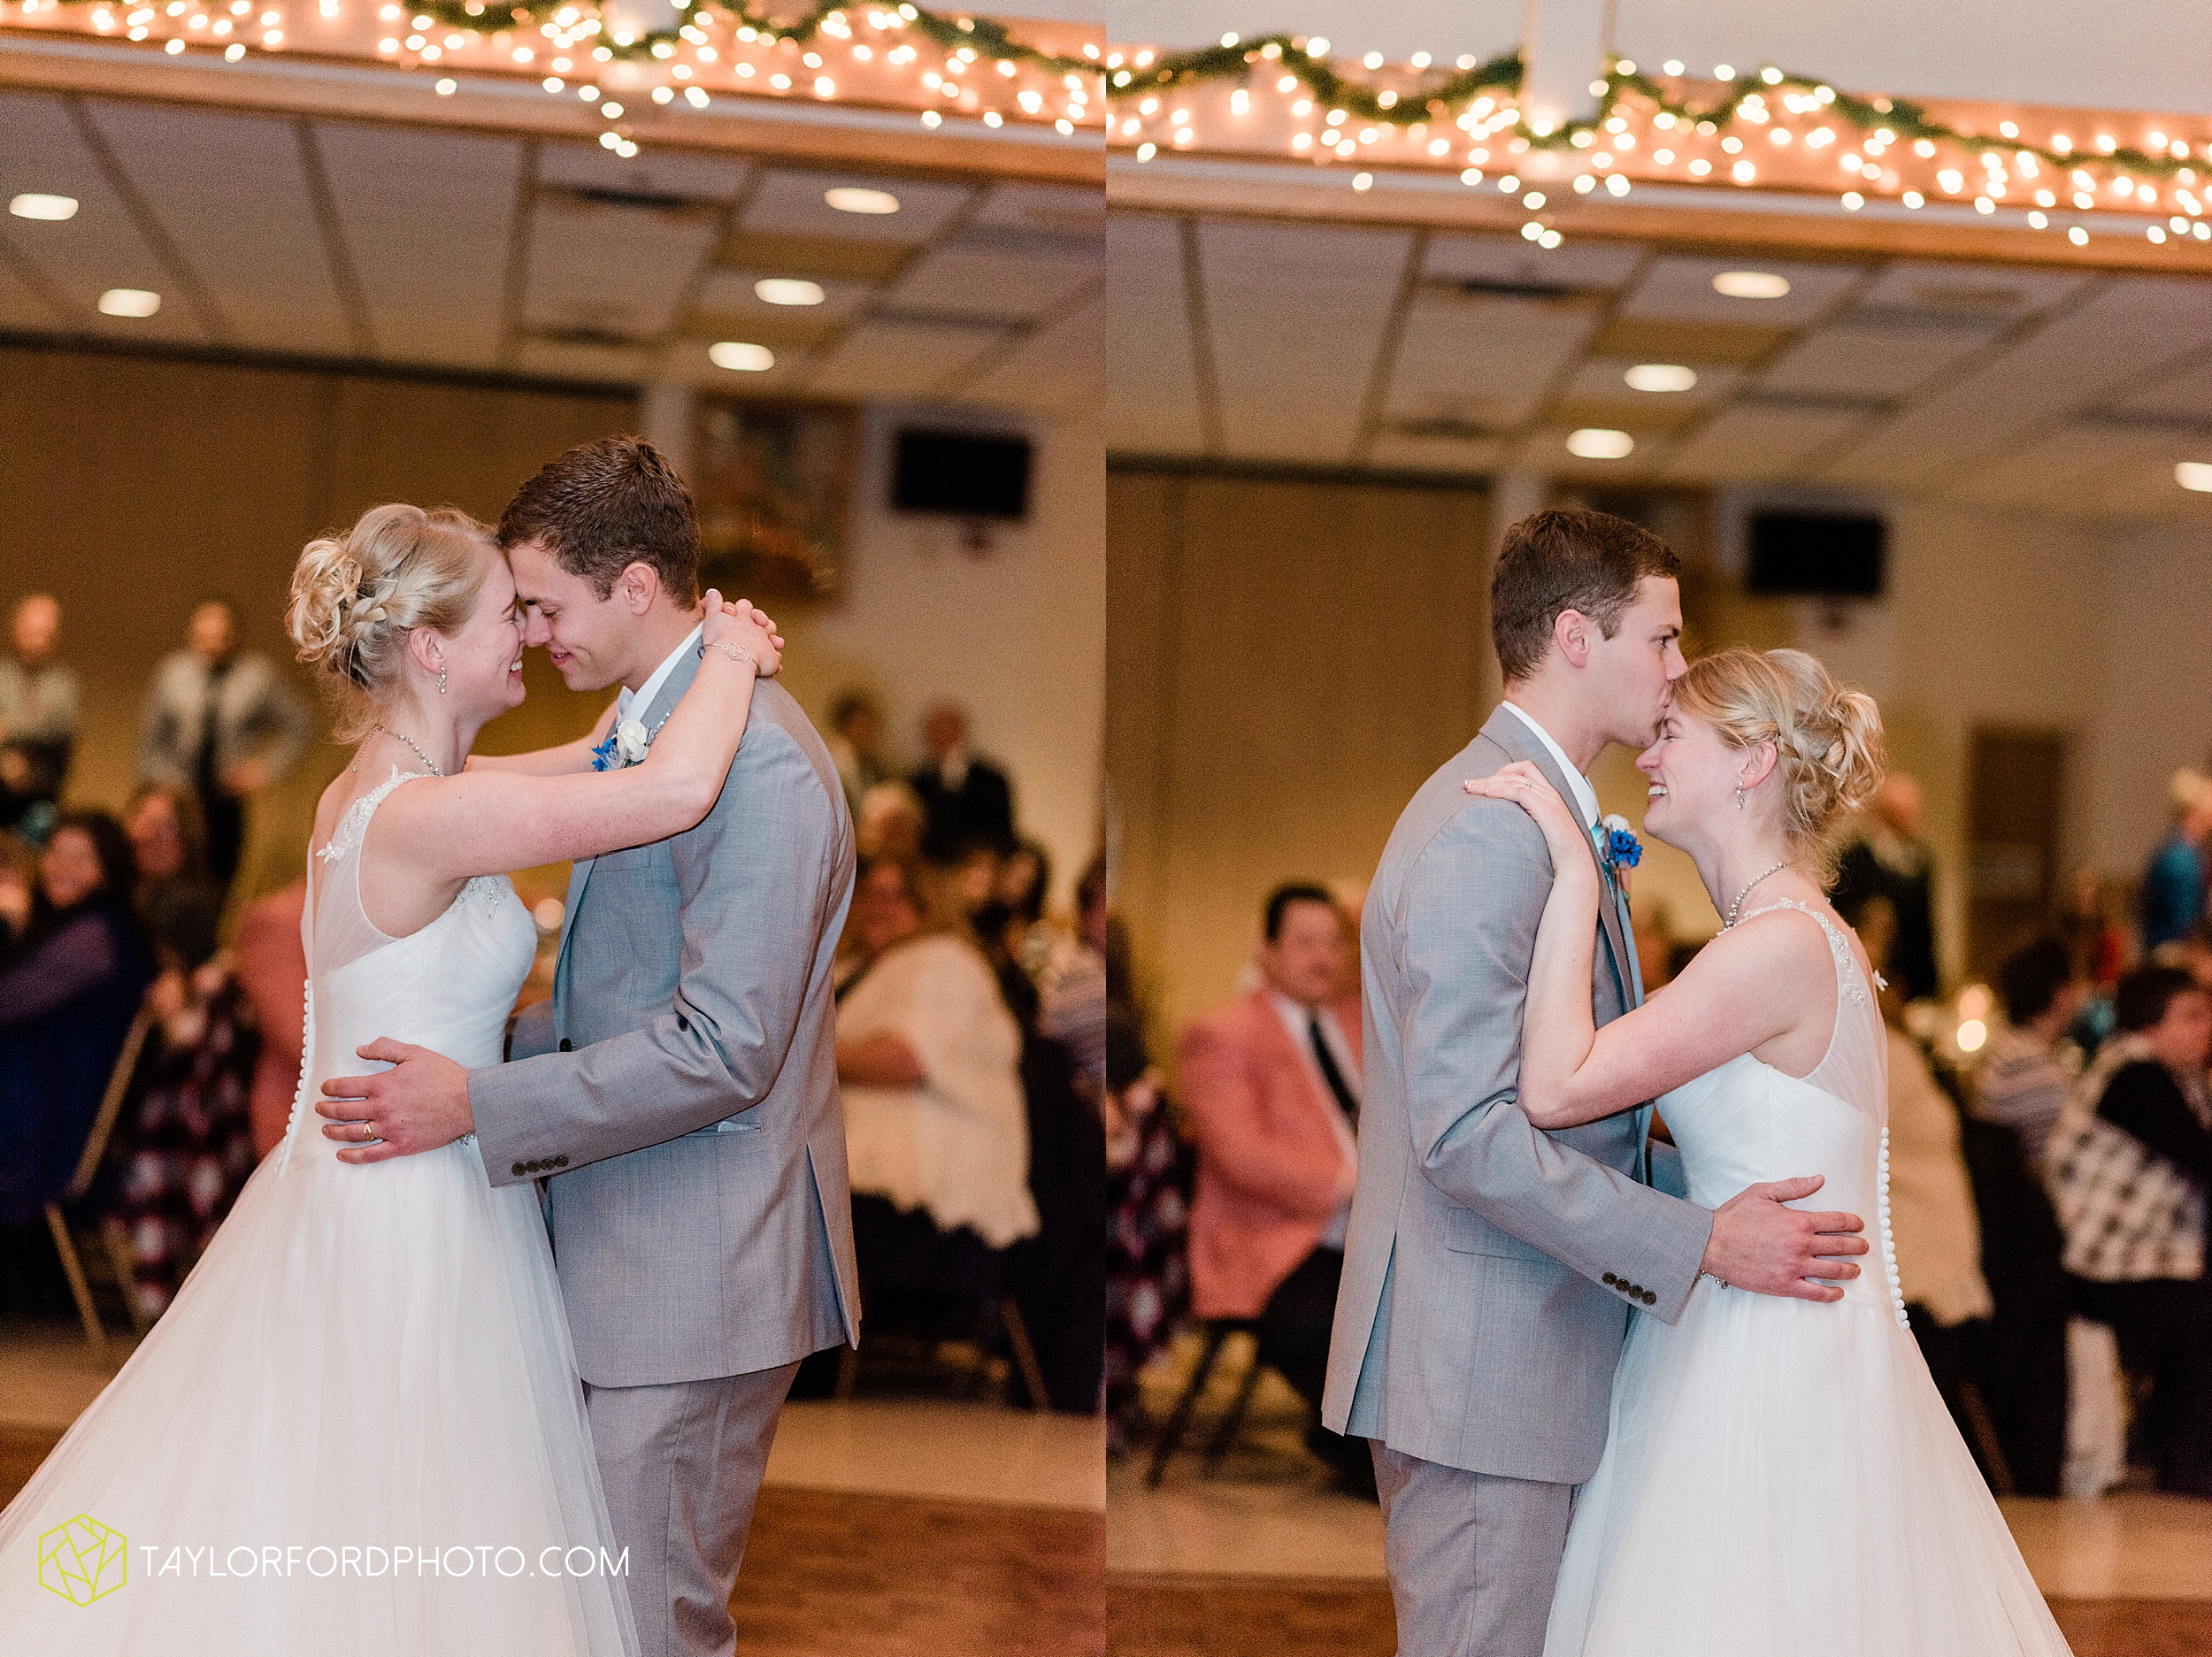 pleasant-view-church-christmas-celina-fraternal-order-of-eagles-reception-wedding-wren-willshire-van-wert-ohio-photography-taylor-ford-hirschy-photographer_2195.jpg